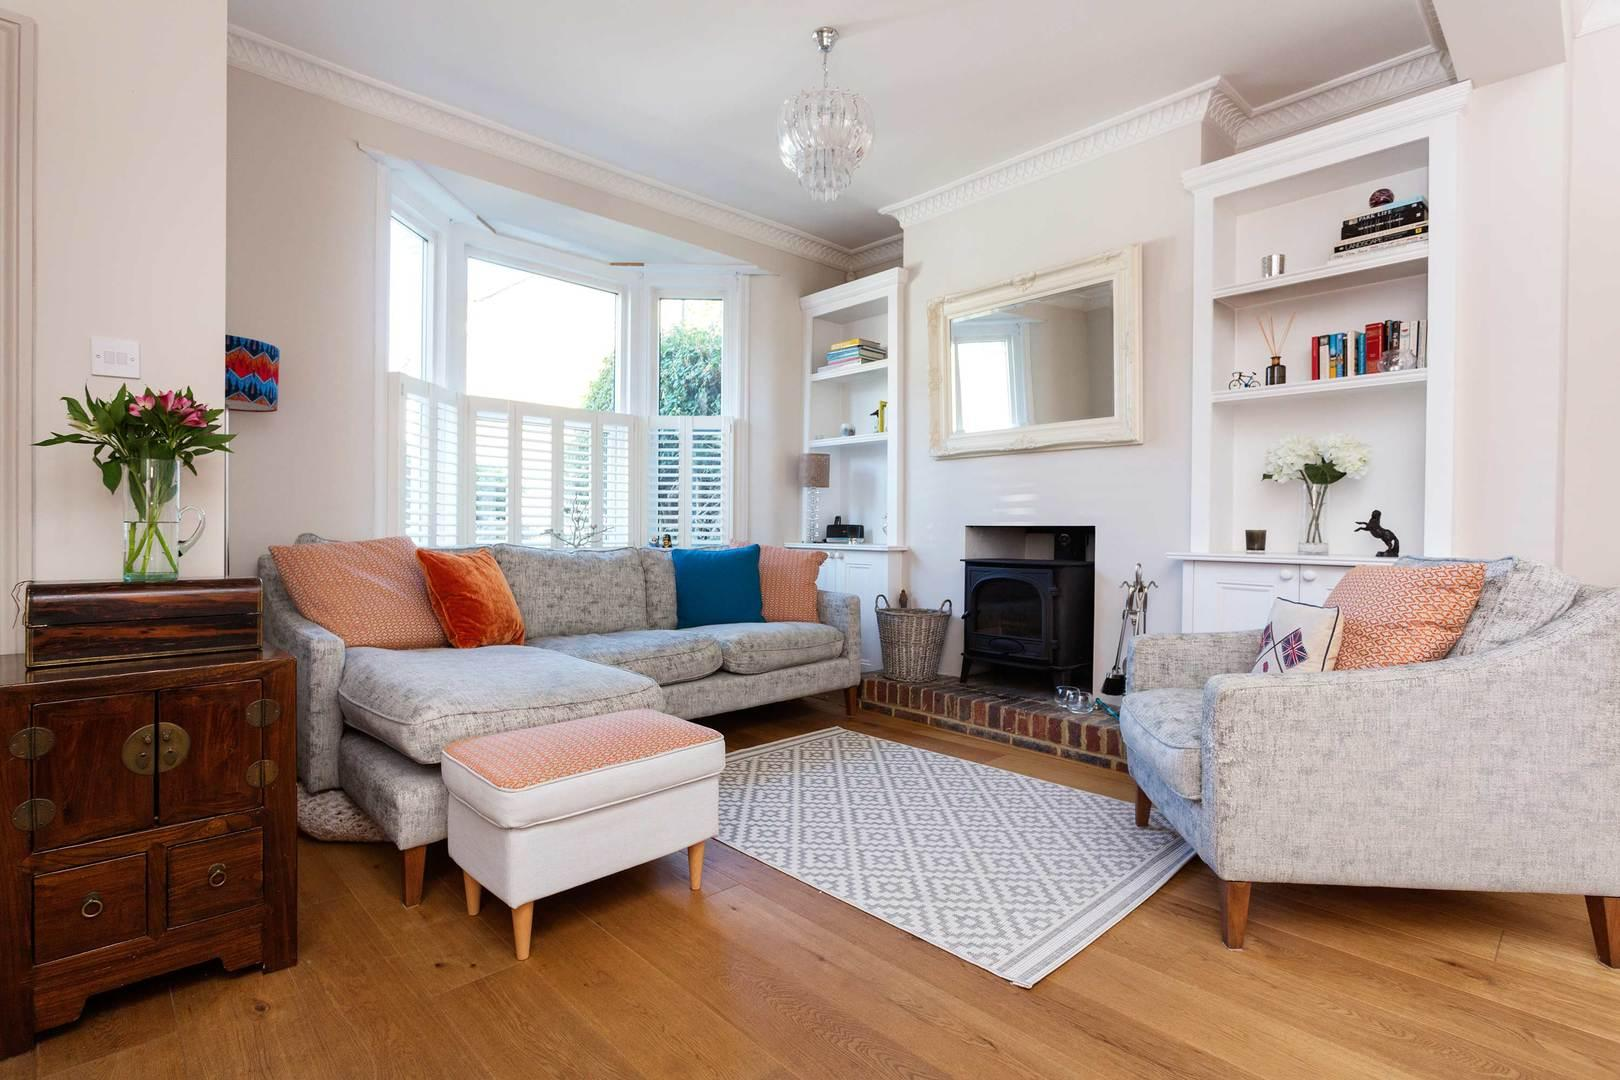 Property Image 1 - Attractive Vintage-Style Wandsworth Home with Garden